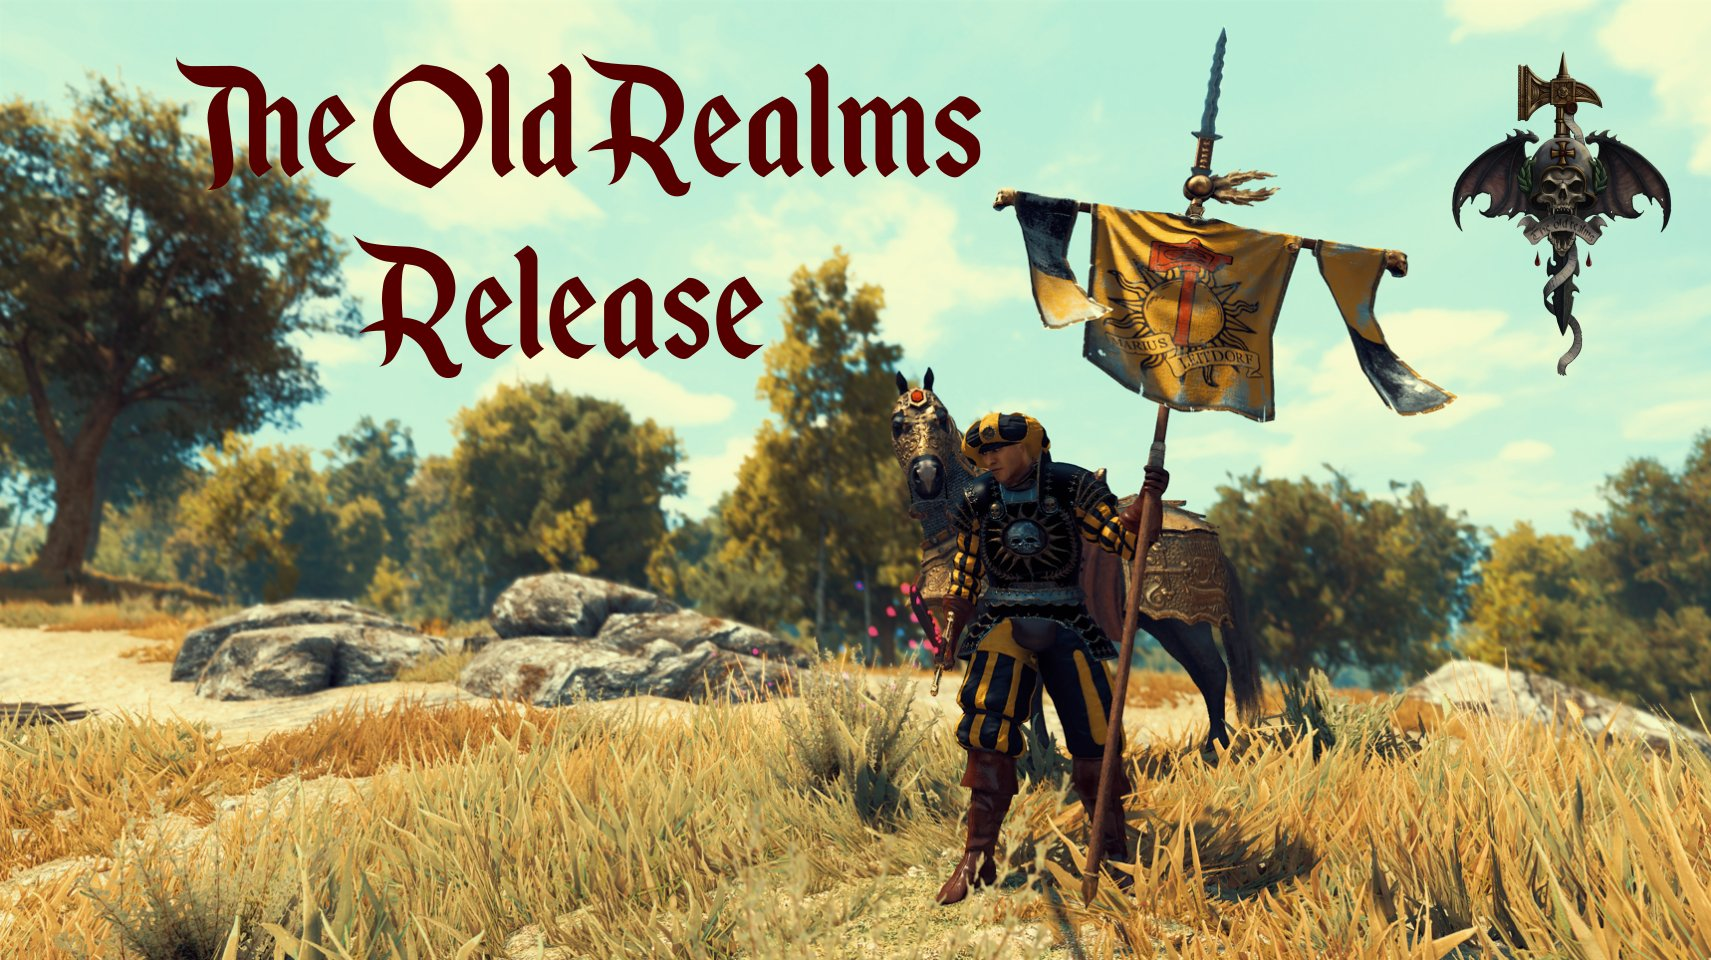 [SP][EN] The Old Realms E_AYh2GWQAUcqSu?format=jpg&name=large